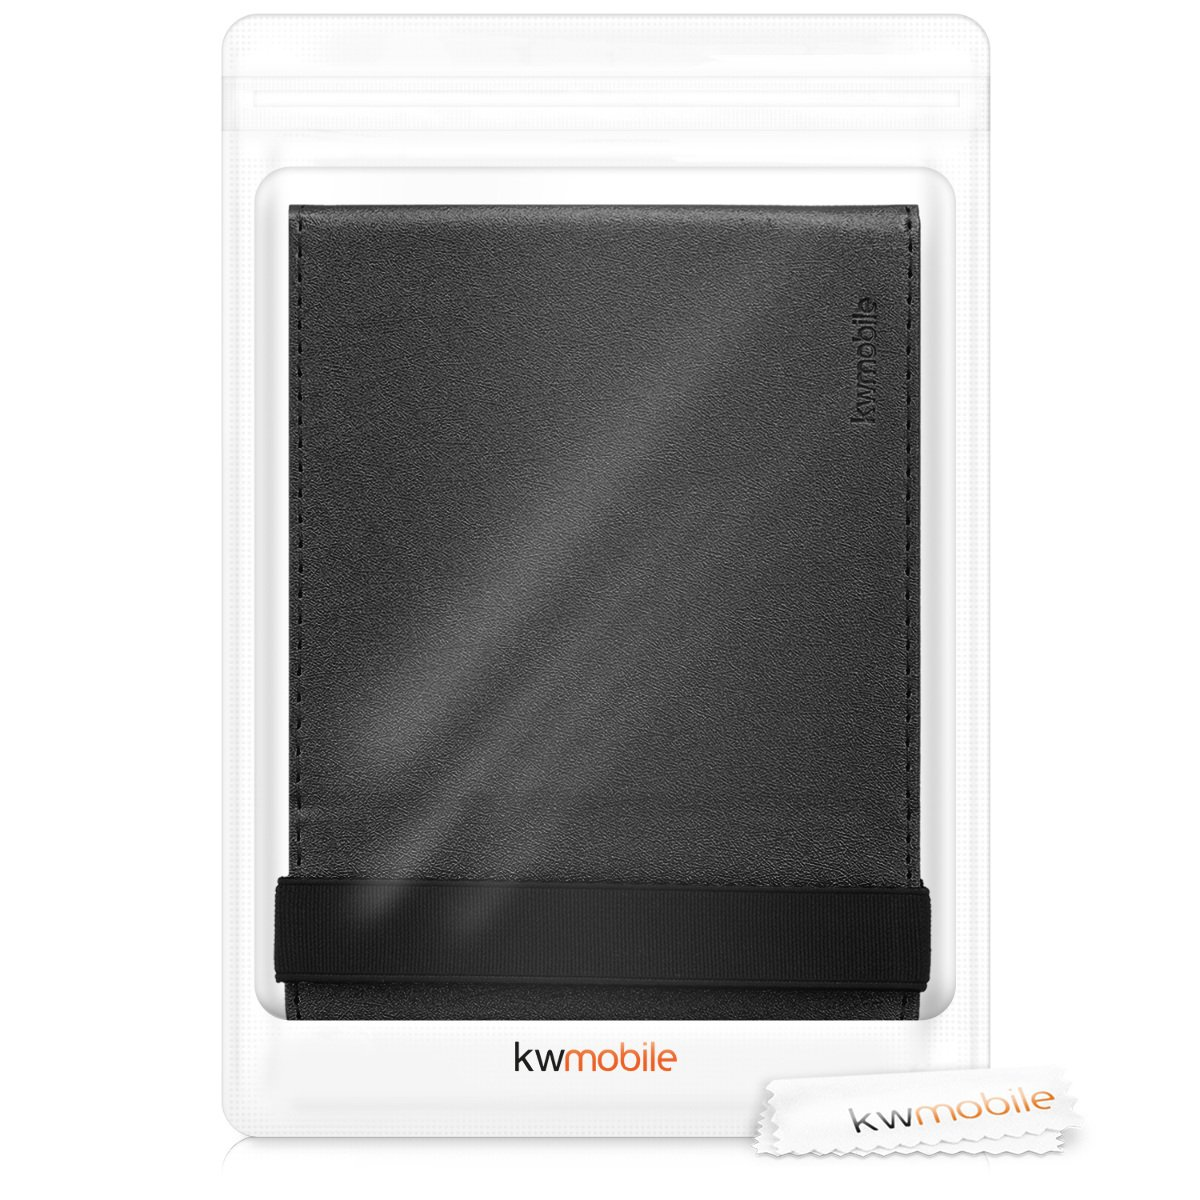 kwmobile Cover for Tolino Vision 1/2 / 3/4 HD - Case with Built-in Hand Strap and Stand in Black by kwmobile (Image #8)